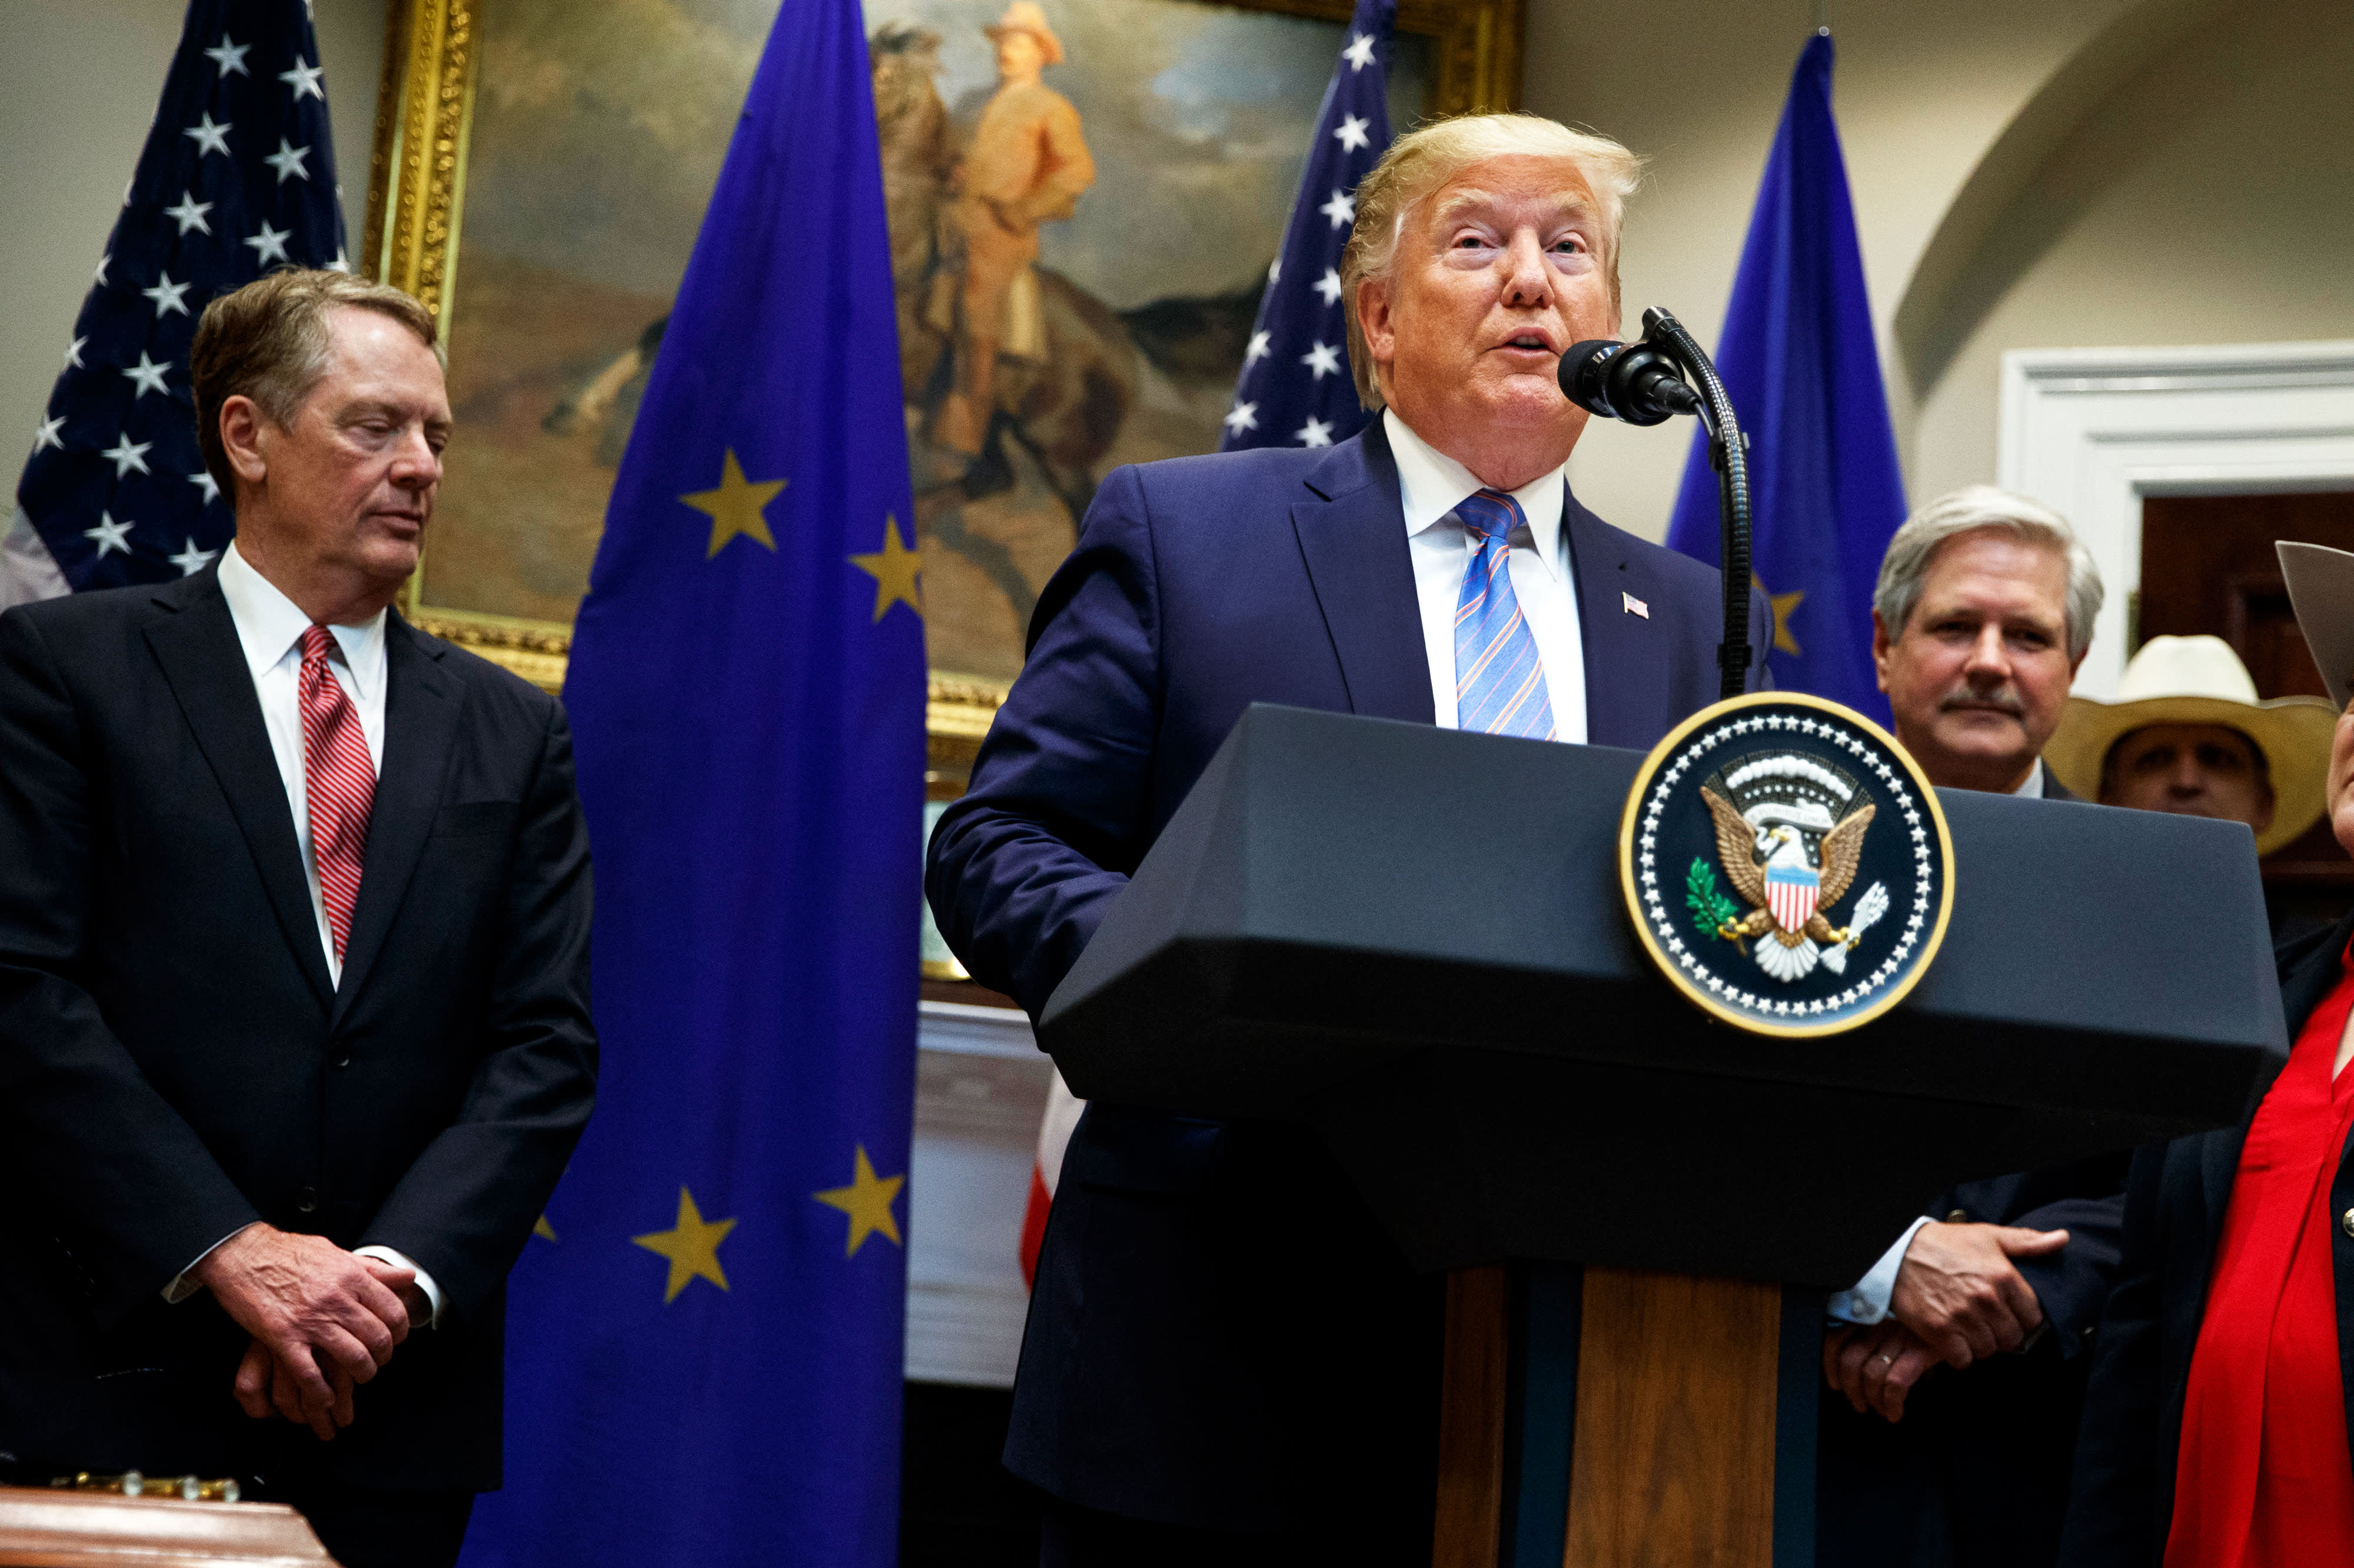 Trump announces deal to expand US beef exports in the EU — and jokes about Mercedes, BMW tariffs